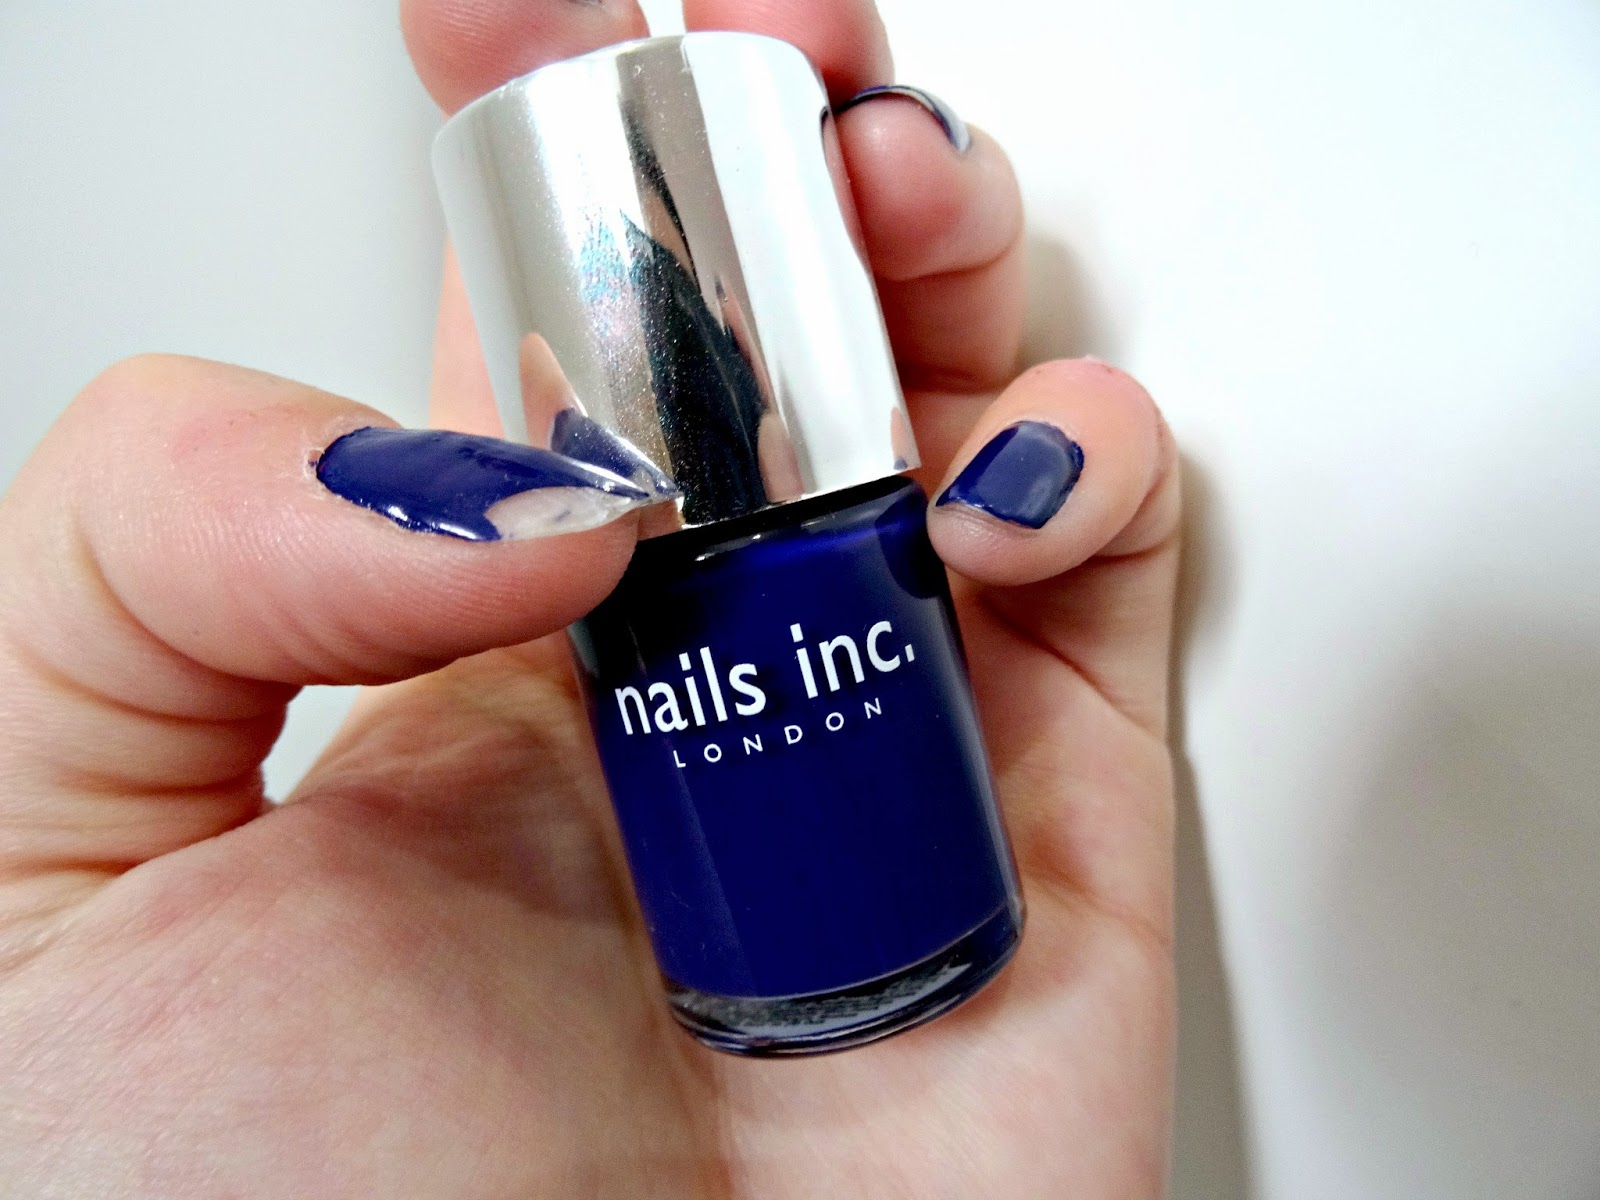 Nails Inc Nail polish chipps very easily